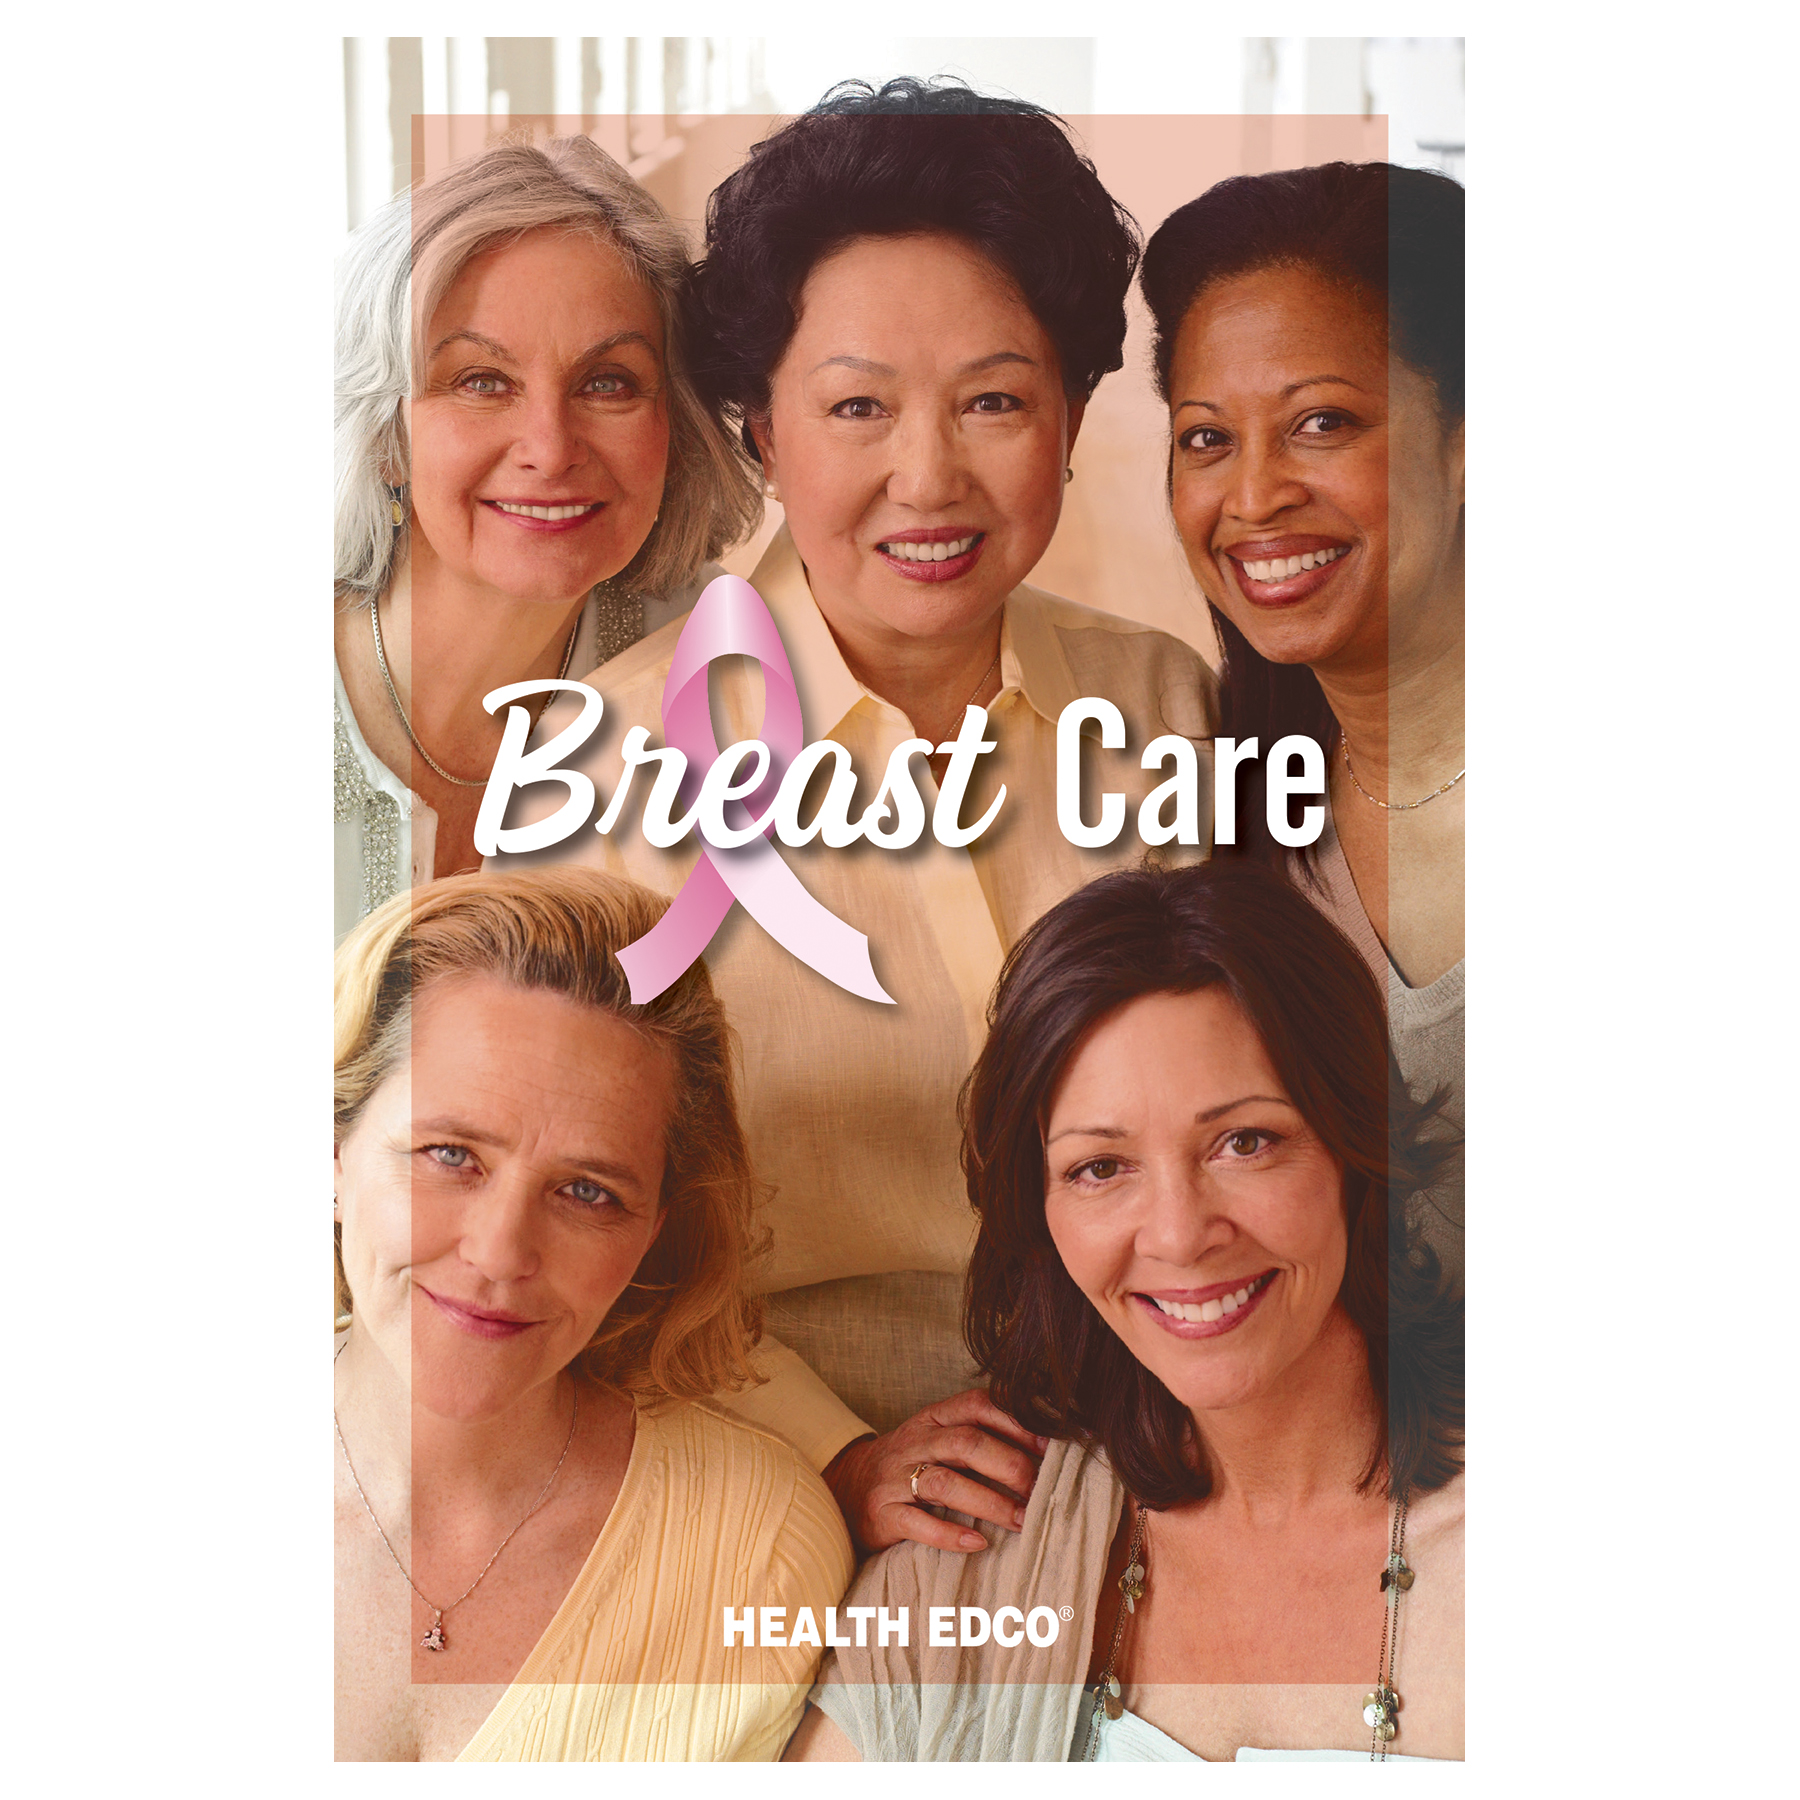 Breast Care 16-page booklet cover, multi-ethnic women and testing methods, Health Edco, 40001